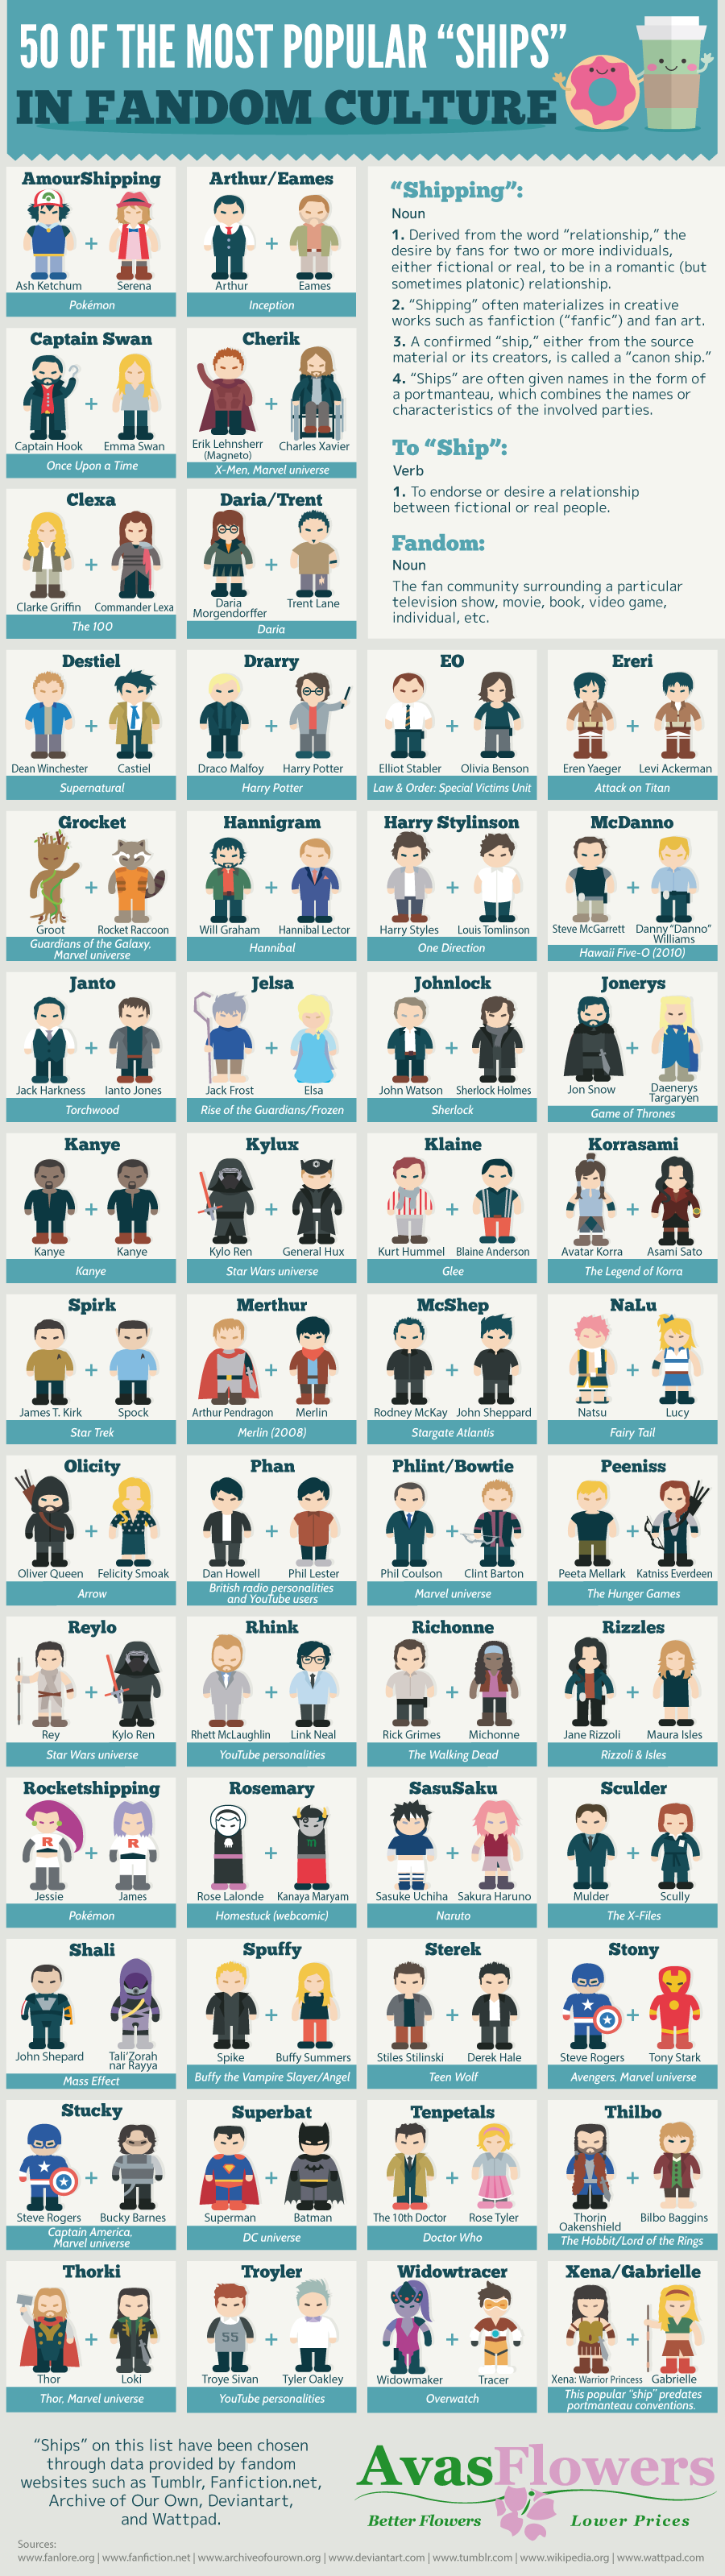 50 of the Most Popular 'Ships' in Fandom Culture #infographic #Ships #Fandom Culture #Culture #Shipping